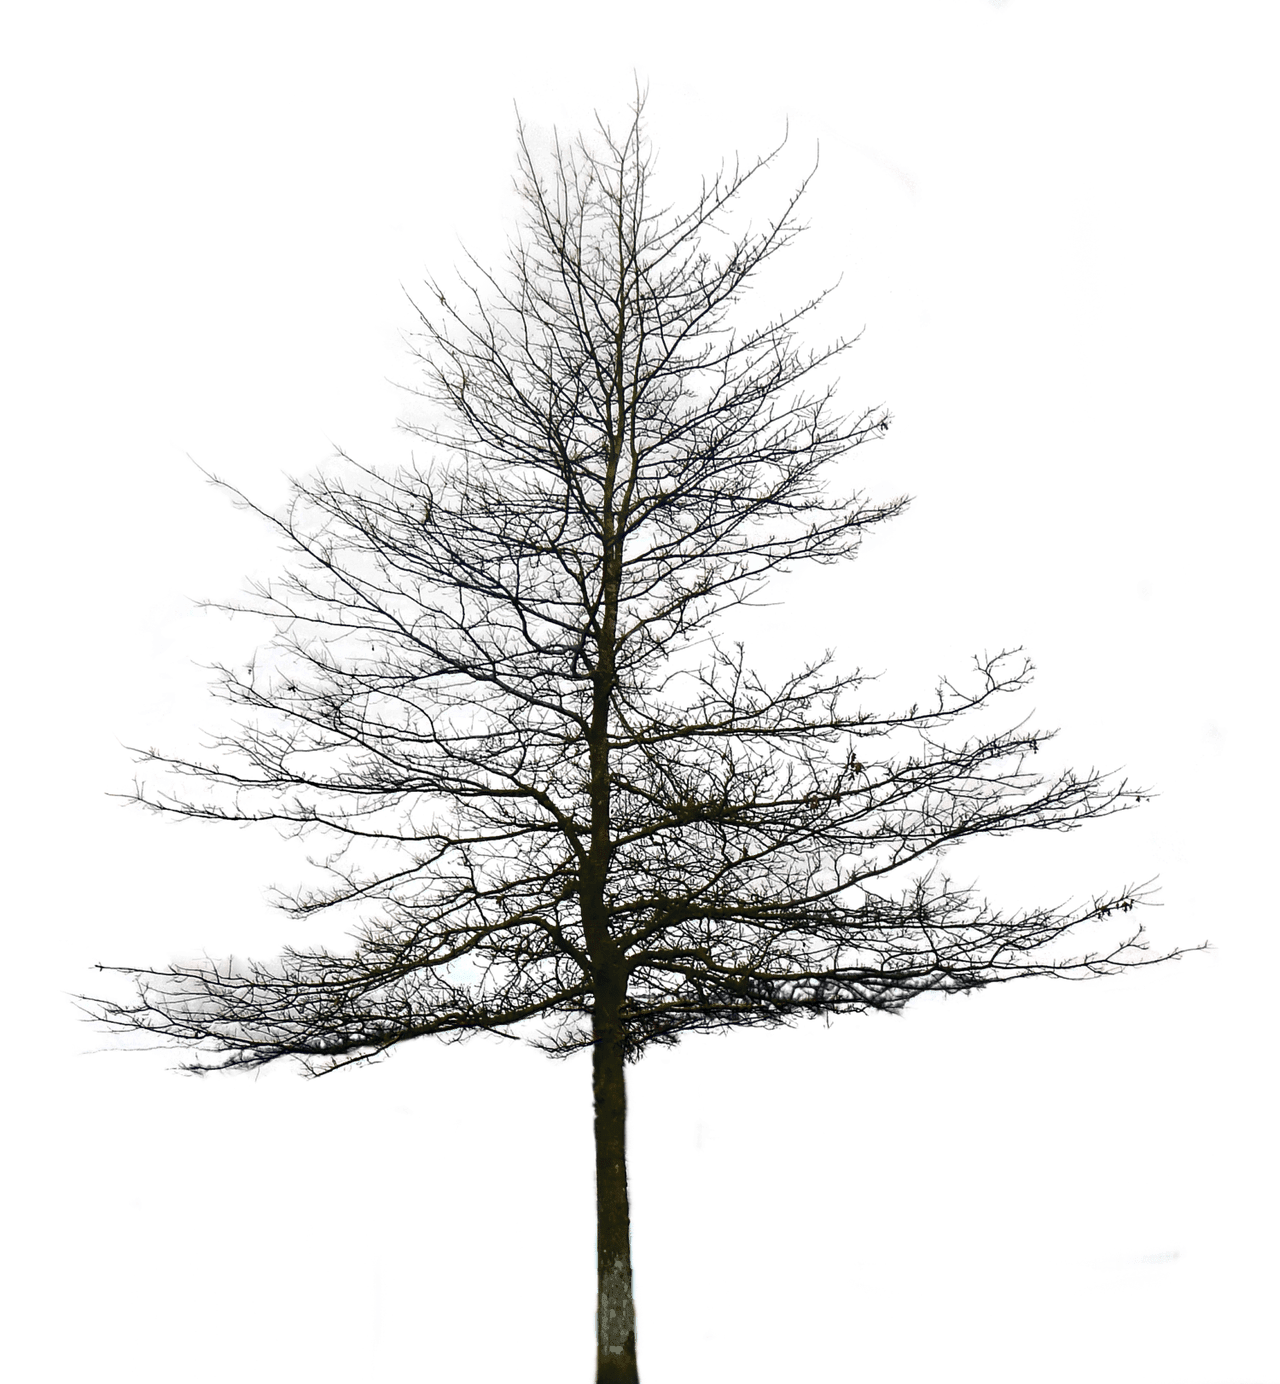 Part01 Hd Tree Zip File For Photoshop And Picsart